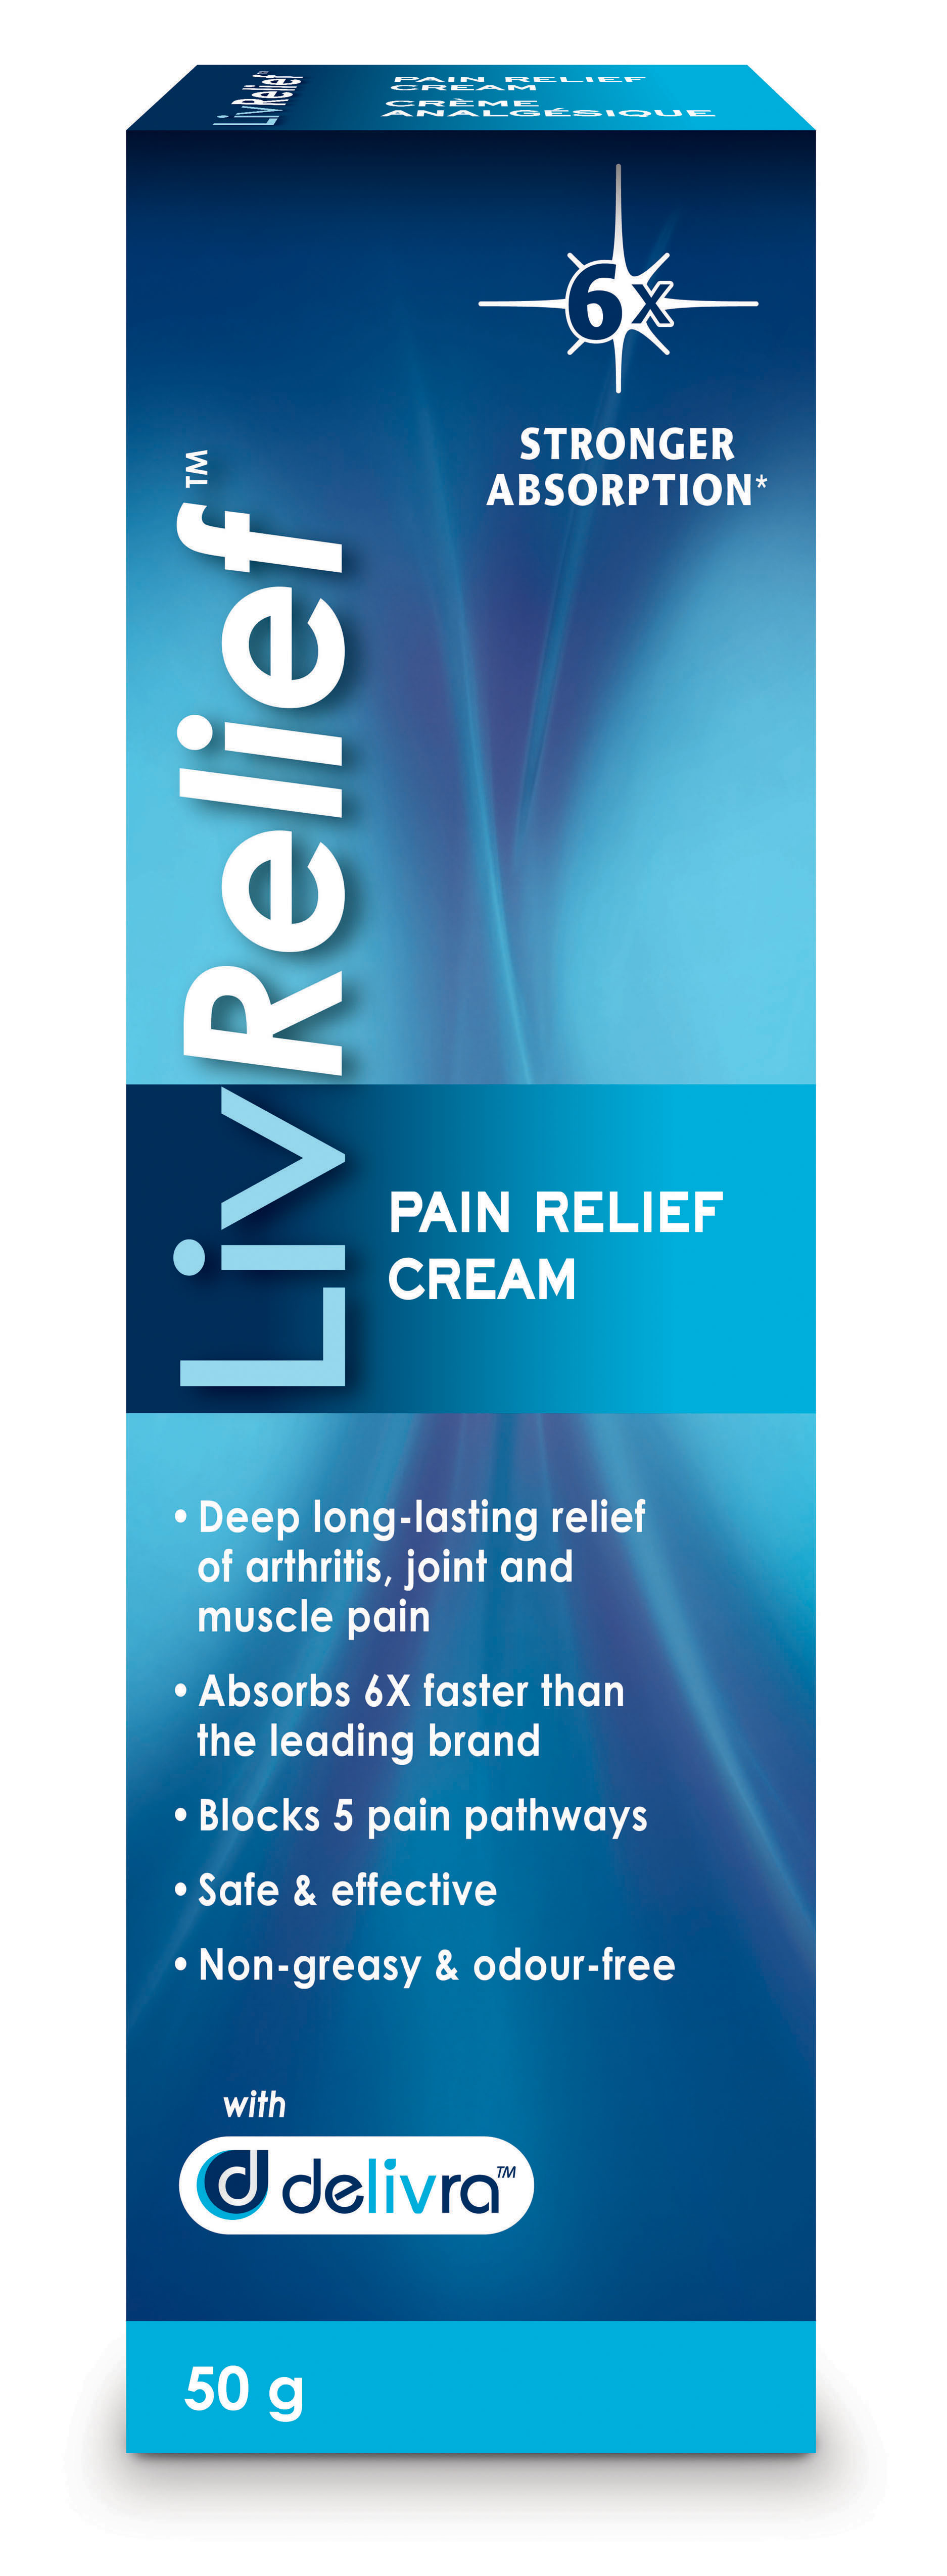 livrelief_pain_front_picture.jpg